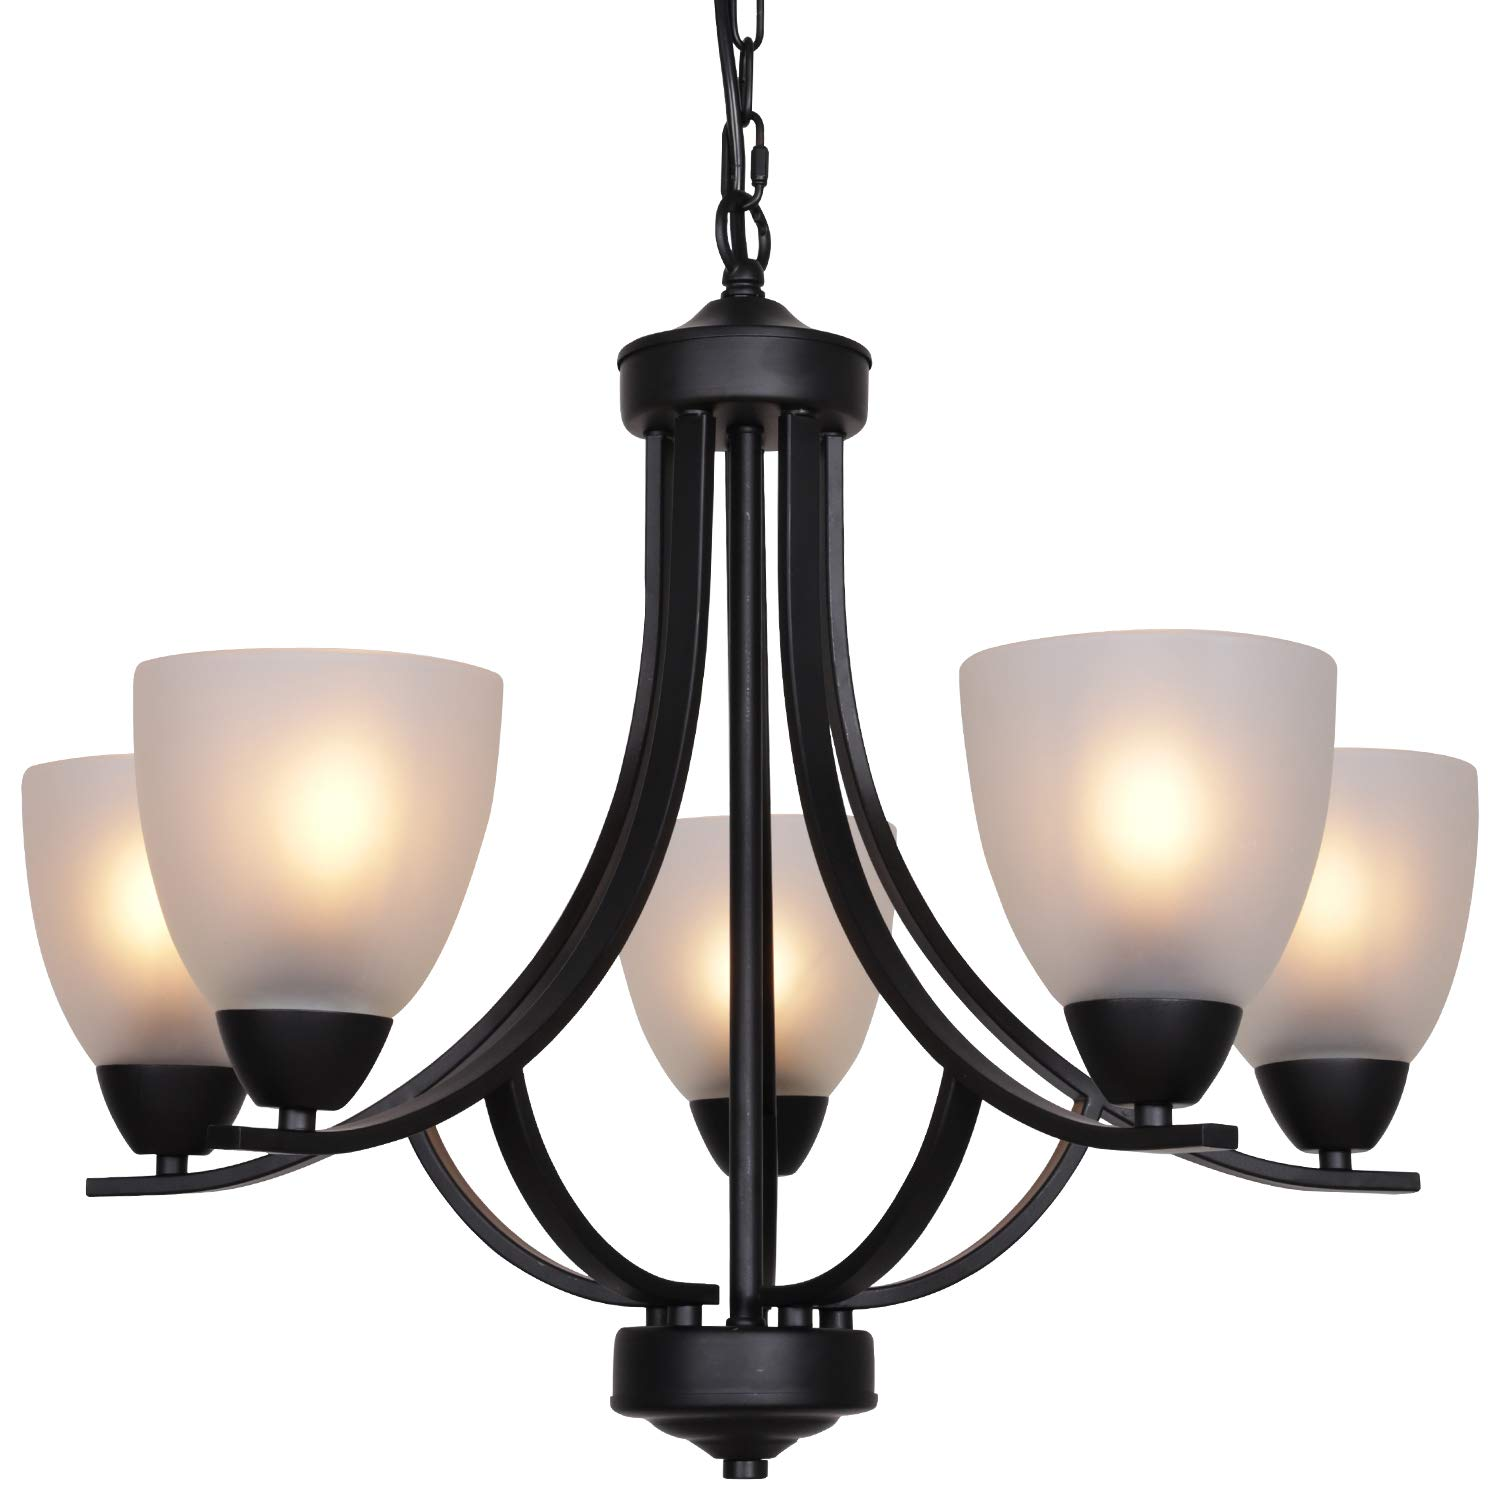 Vinluz 5 light shaded contemporary chandeliers with alabaster glass black rustic light fixtures ceiling hanging mid century modern pendant lighting for